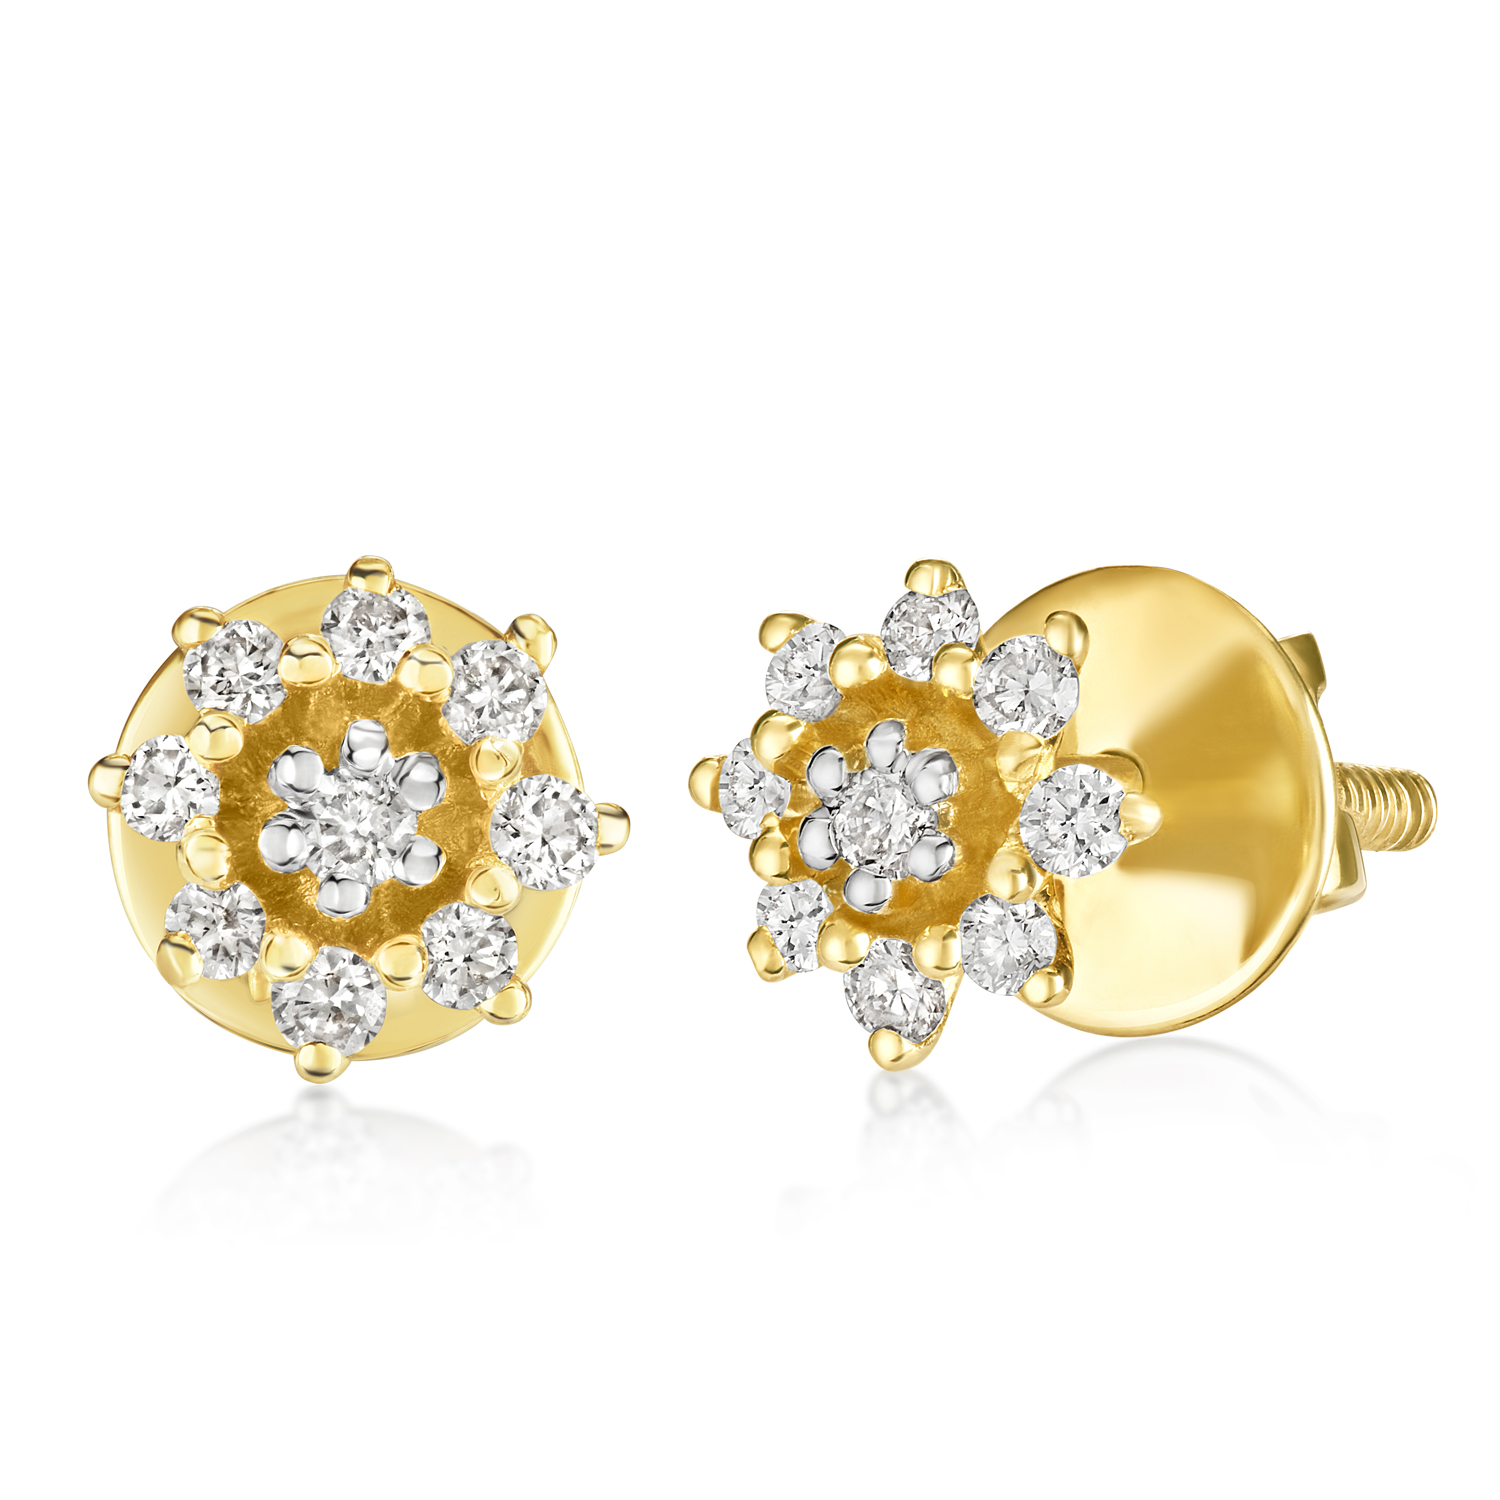 VFM 14K Yellow Gold Diamonds Earring - VFM438